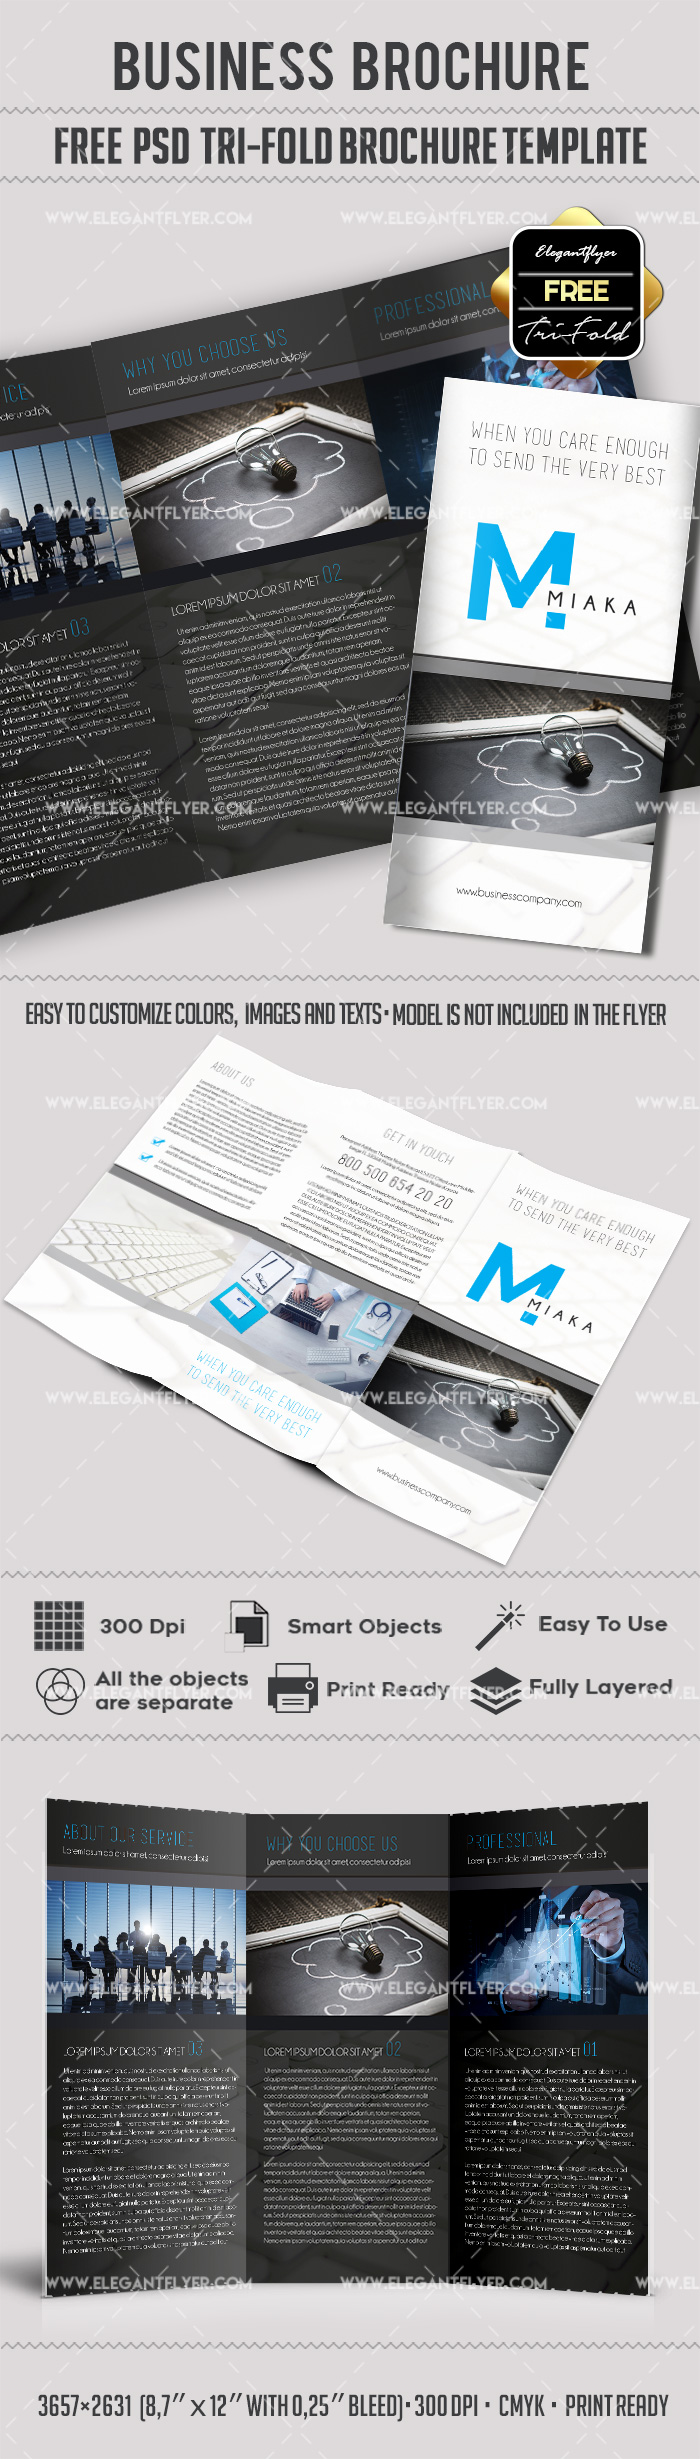 Tri-Fold Brochure Templates free download